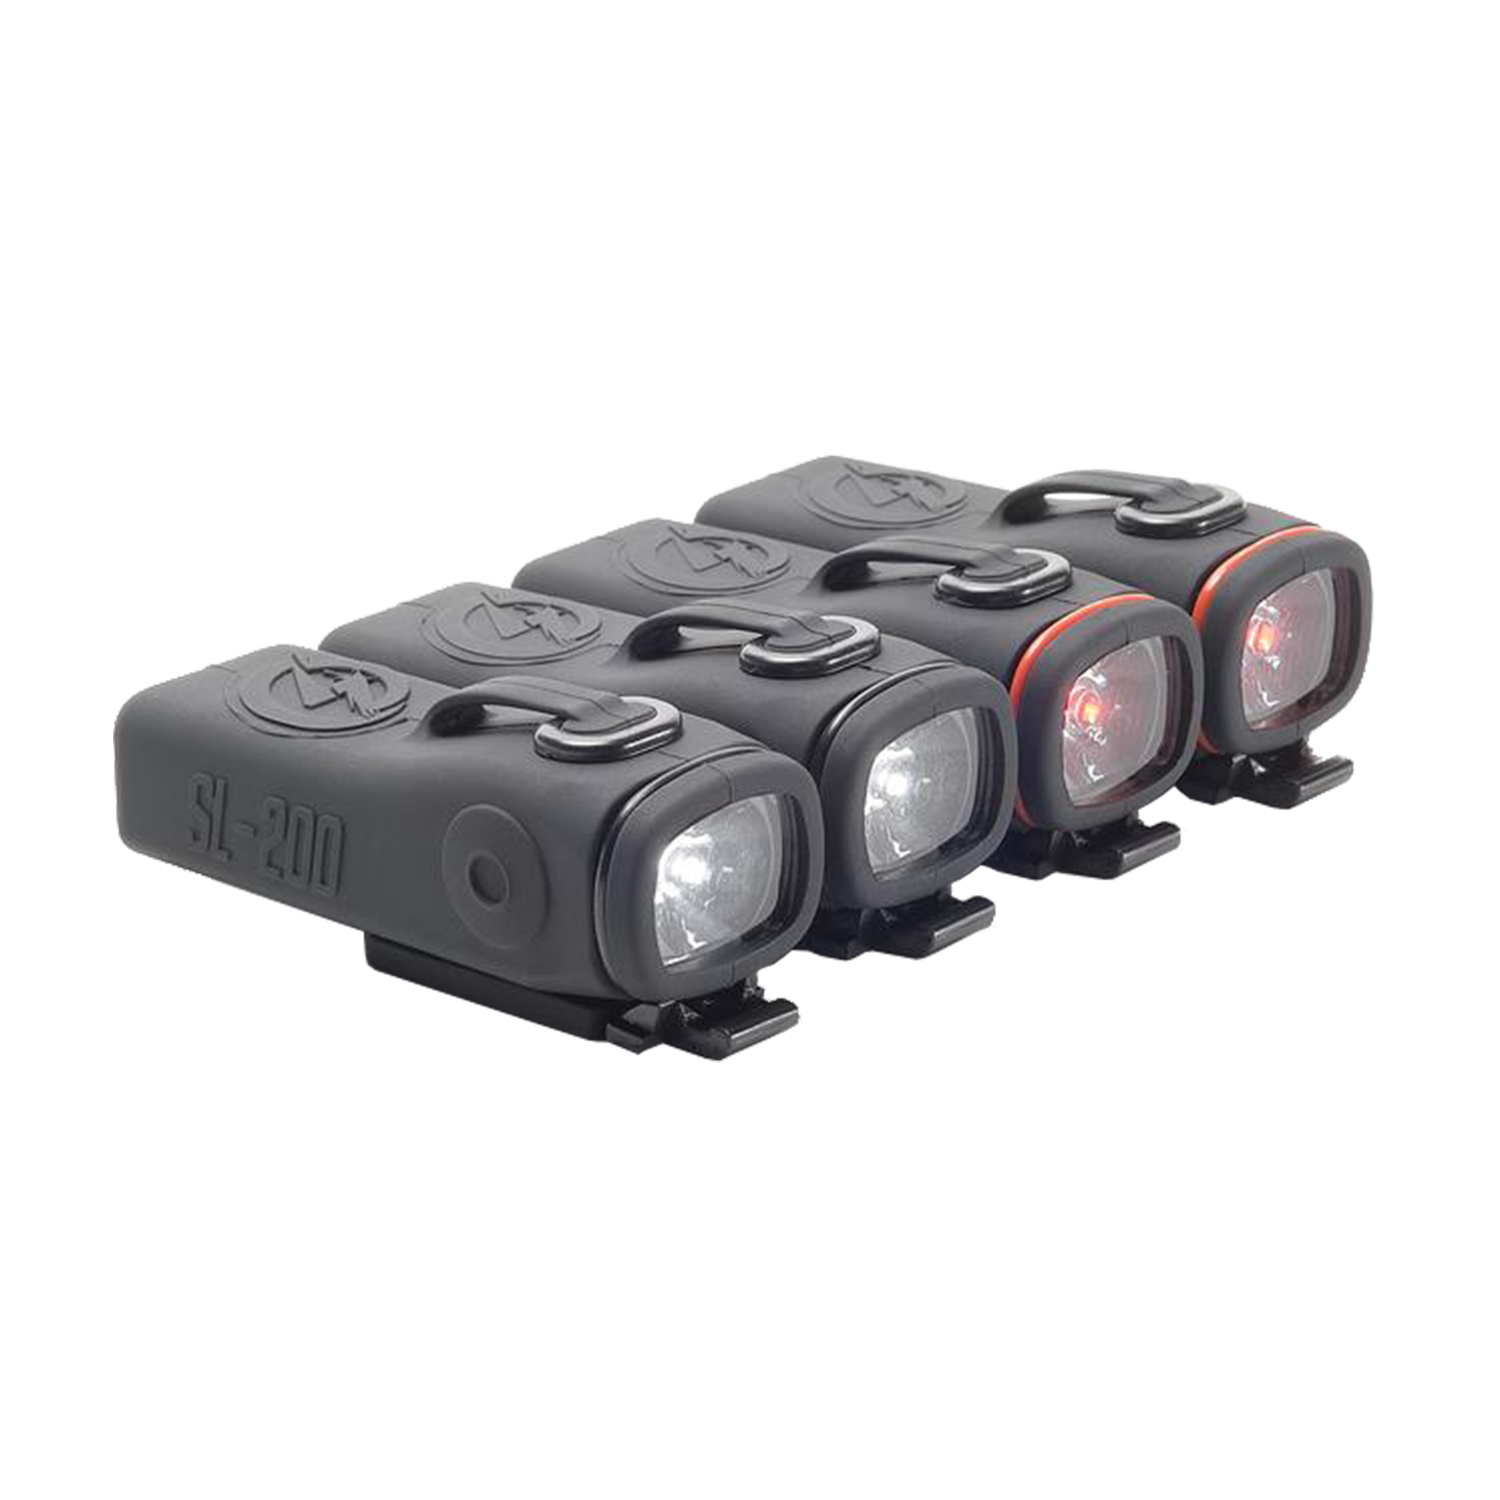 Shredlights SL-200 Luz LED frontales y traseras (4 luces)